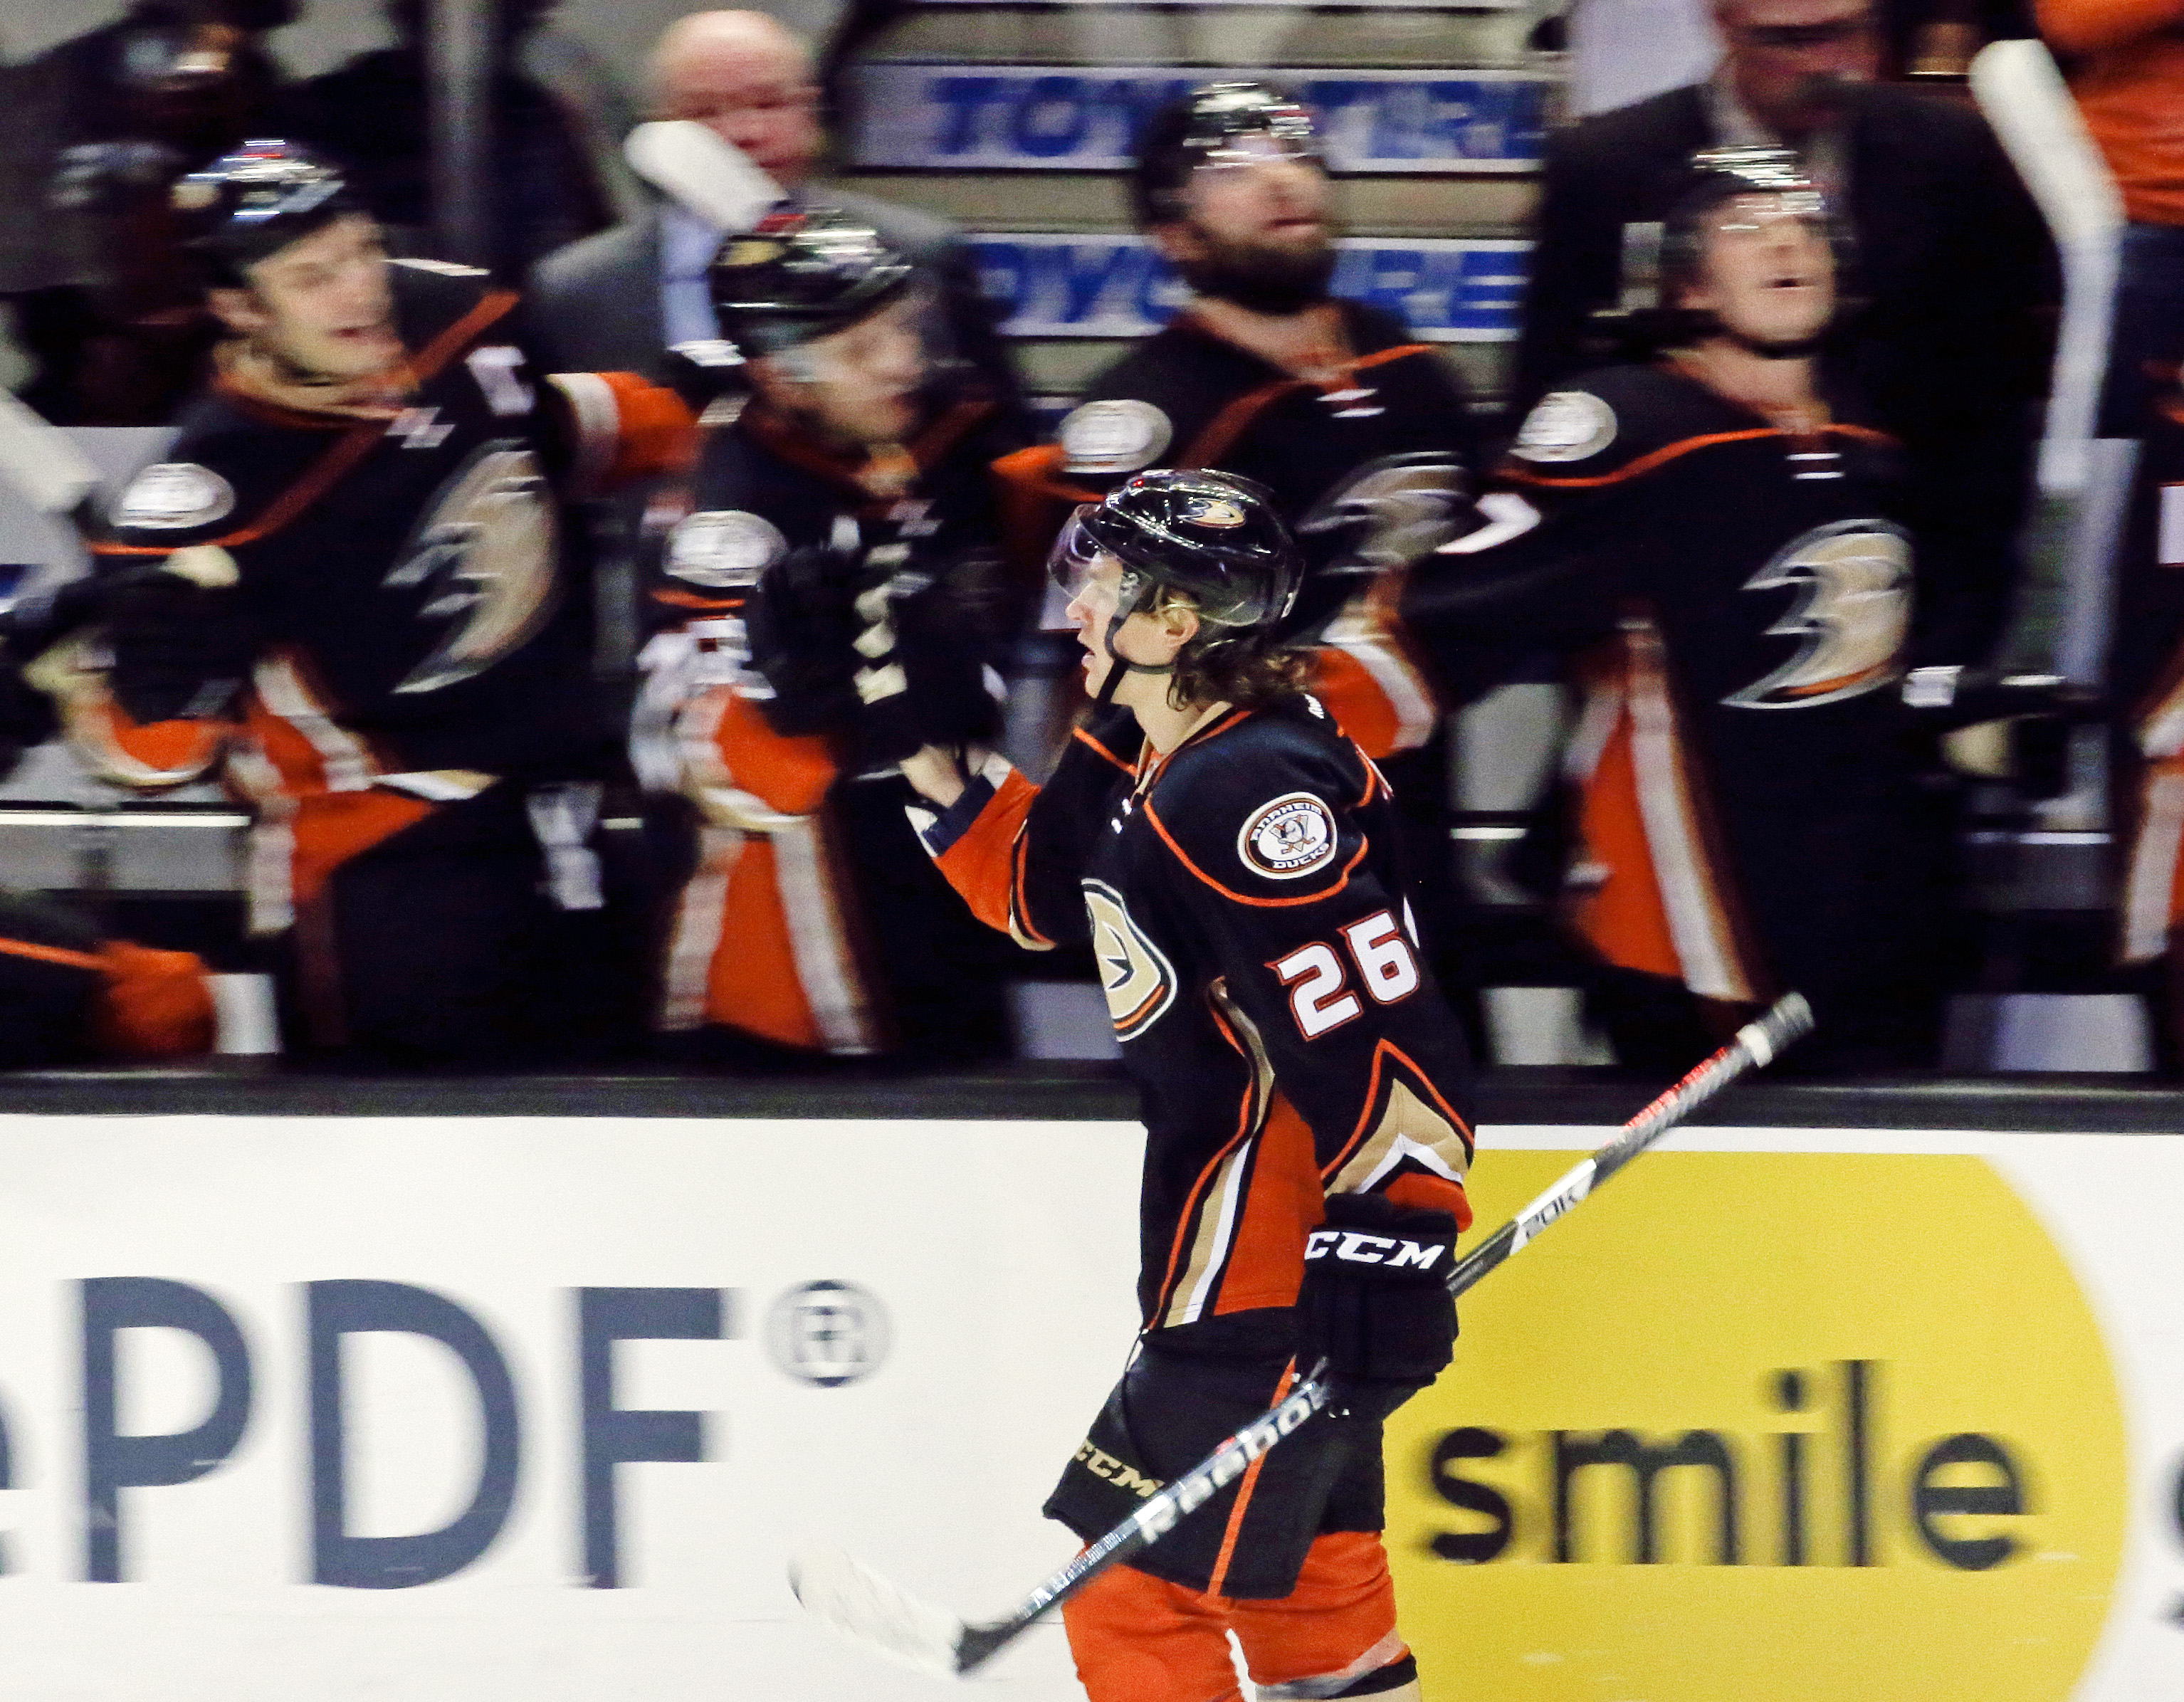 Anaheim Ducks left wing Carl Hagelin celebrates with the bench after scoring during the third period of an NHL hockey game against the Ottawa Senators in Anaheim, Calif., Wednesday, Jan. 13, 2016. The Ducks won 4-1. (AP Photo/Chris Carlson)